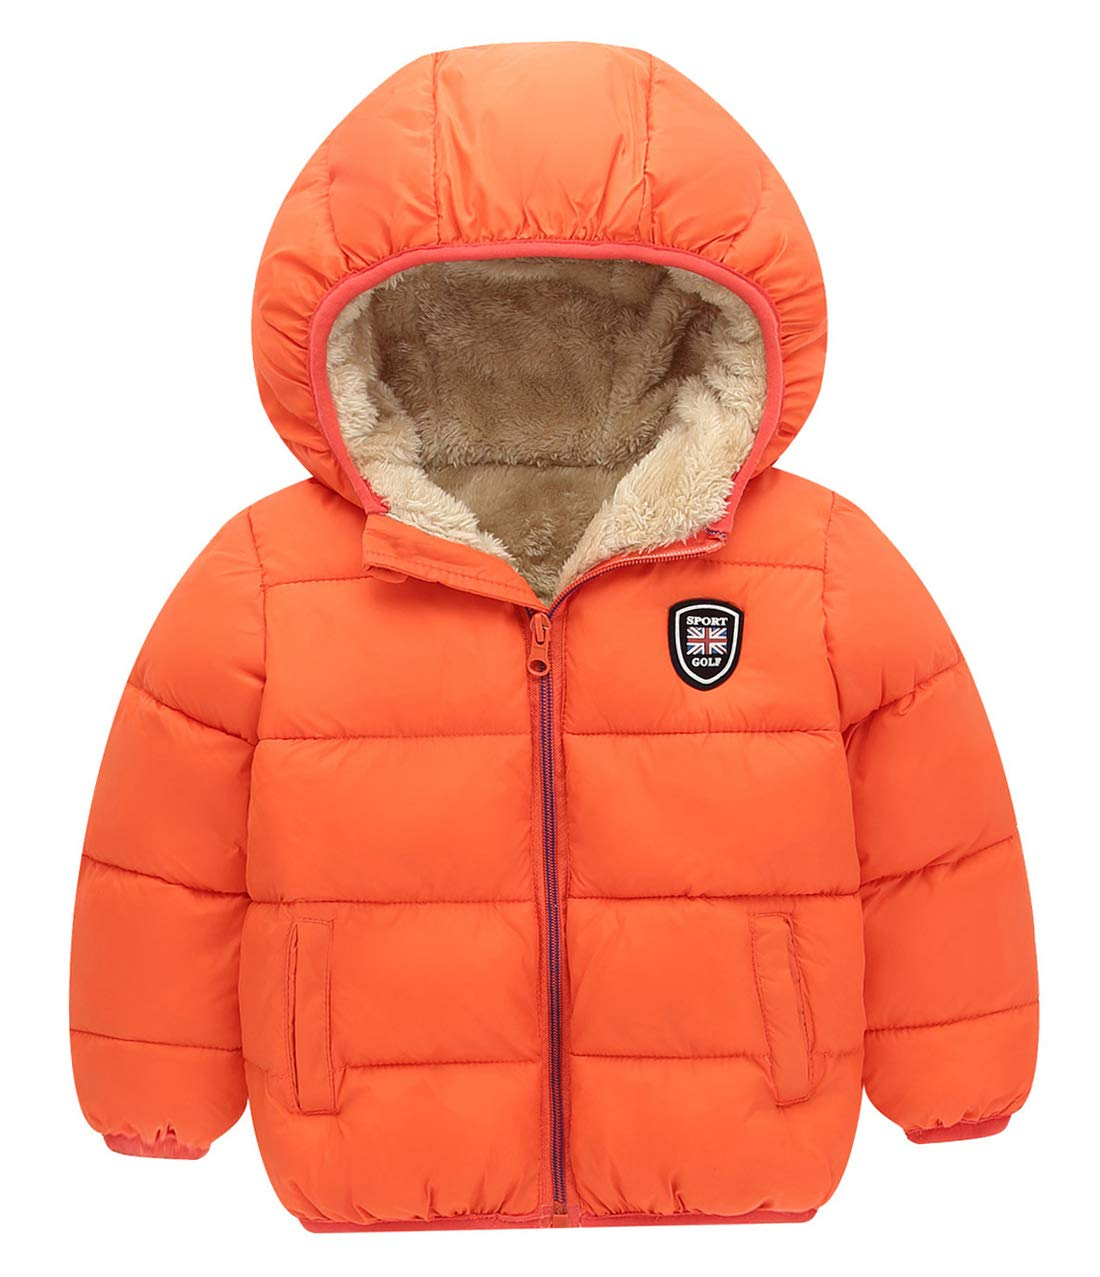 Baby Winter Cotton Coat Thick Warm Windproof Zipper Hooded Jacket Outwear for 2-3 Years, Orange by Happy Cherry